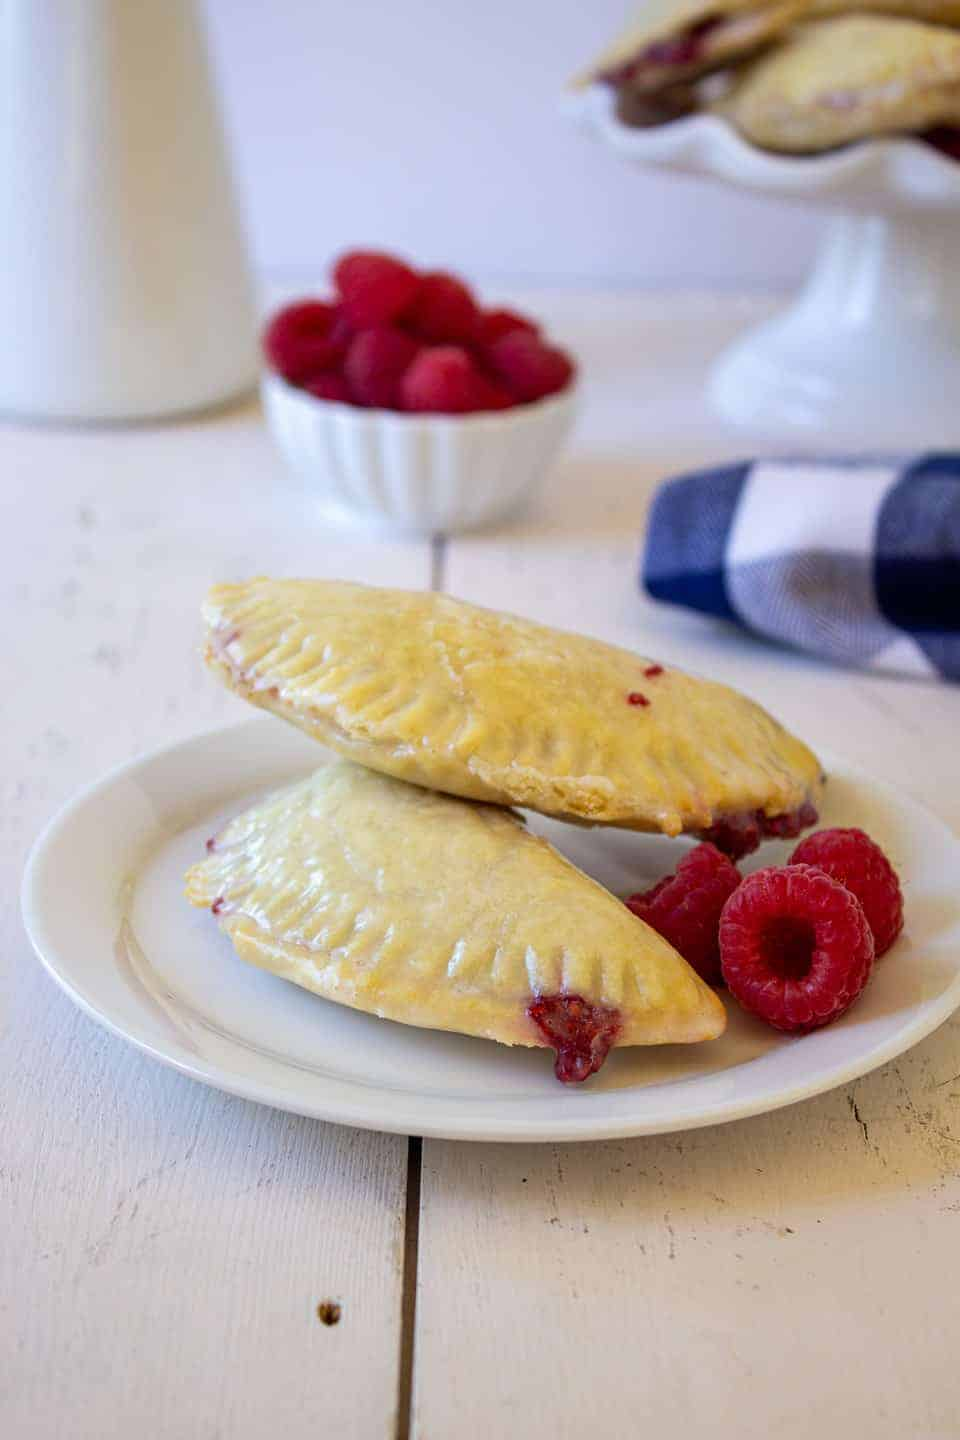 Two Raspberry Hand Pies on a plate.